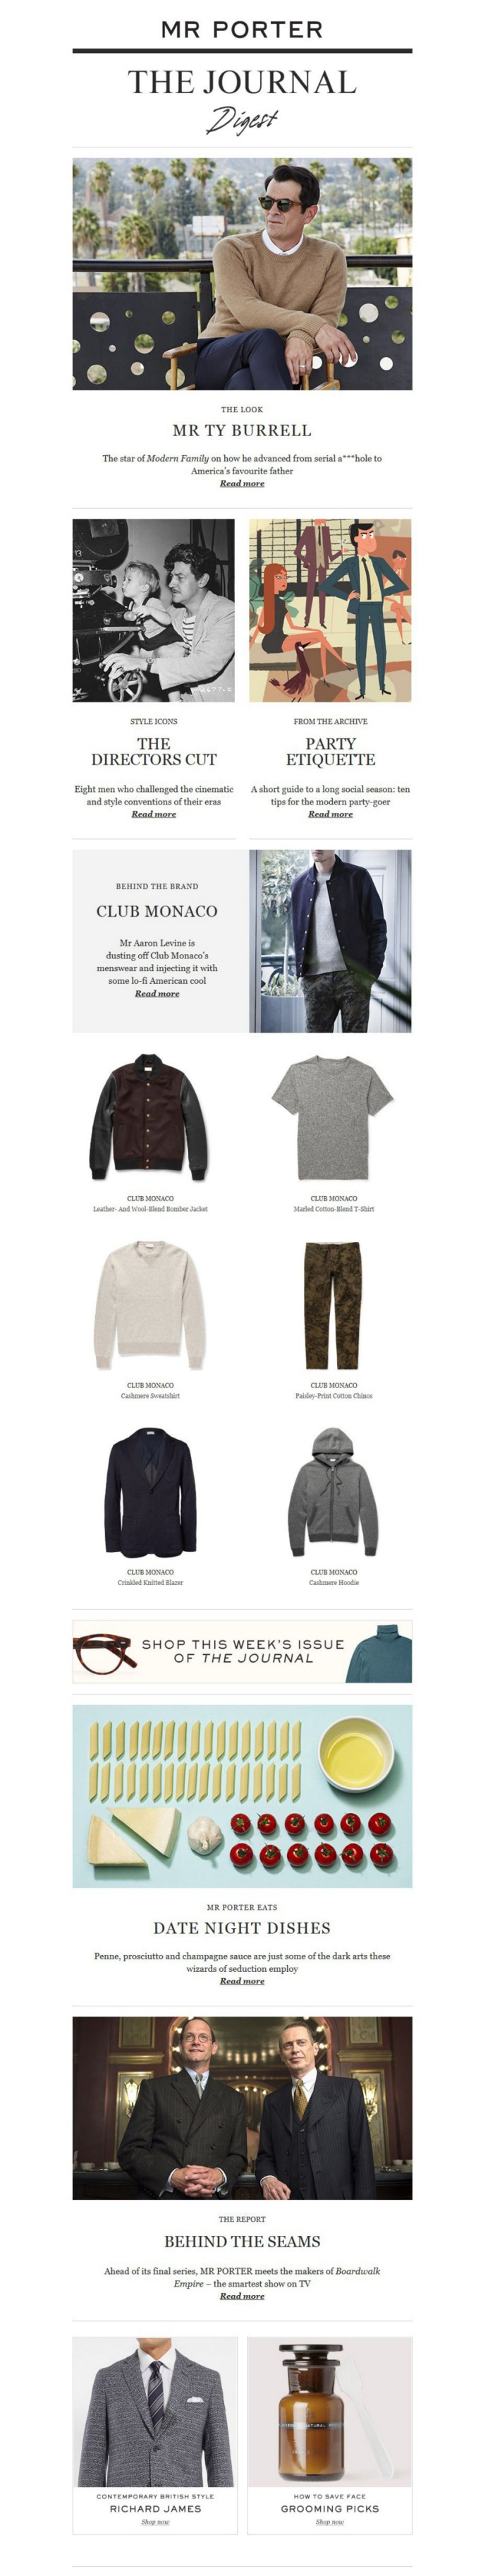 Mr Porter - The Journal (blog) newsletter - Email Marketing - Gamobu